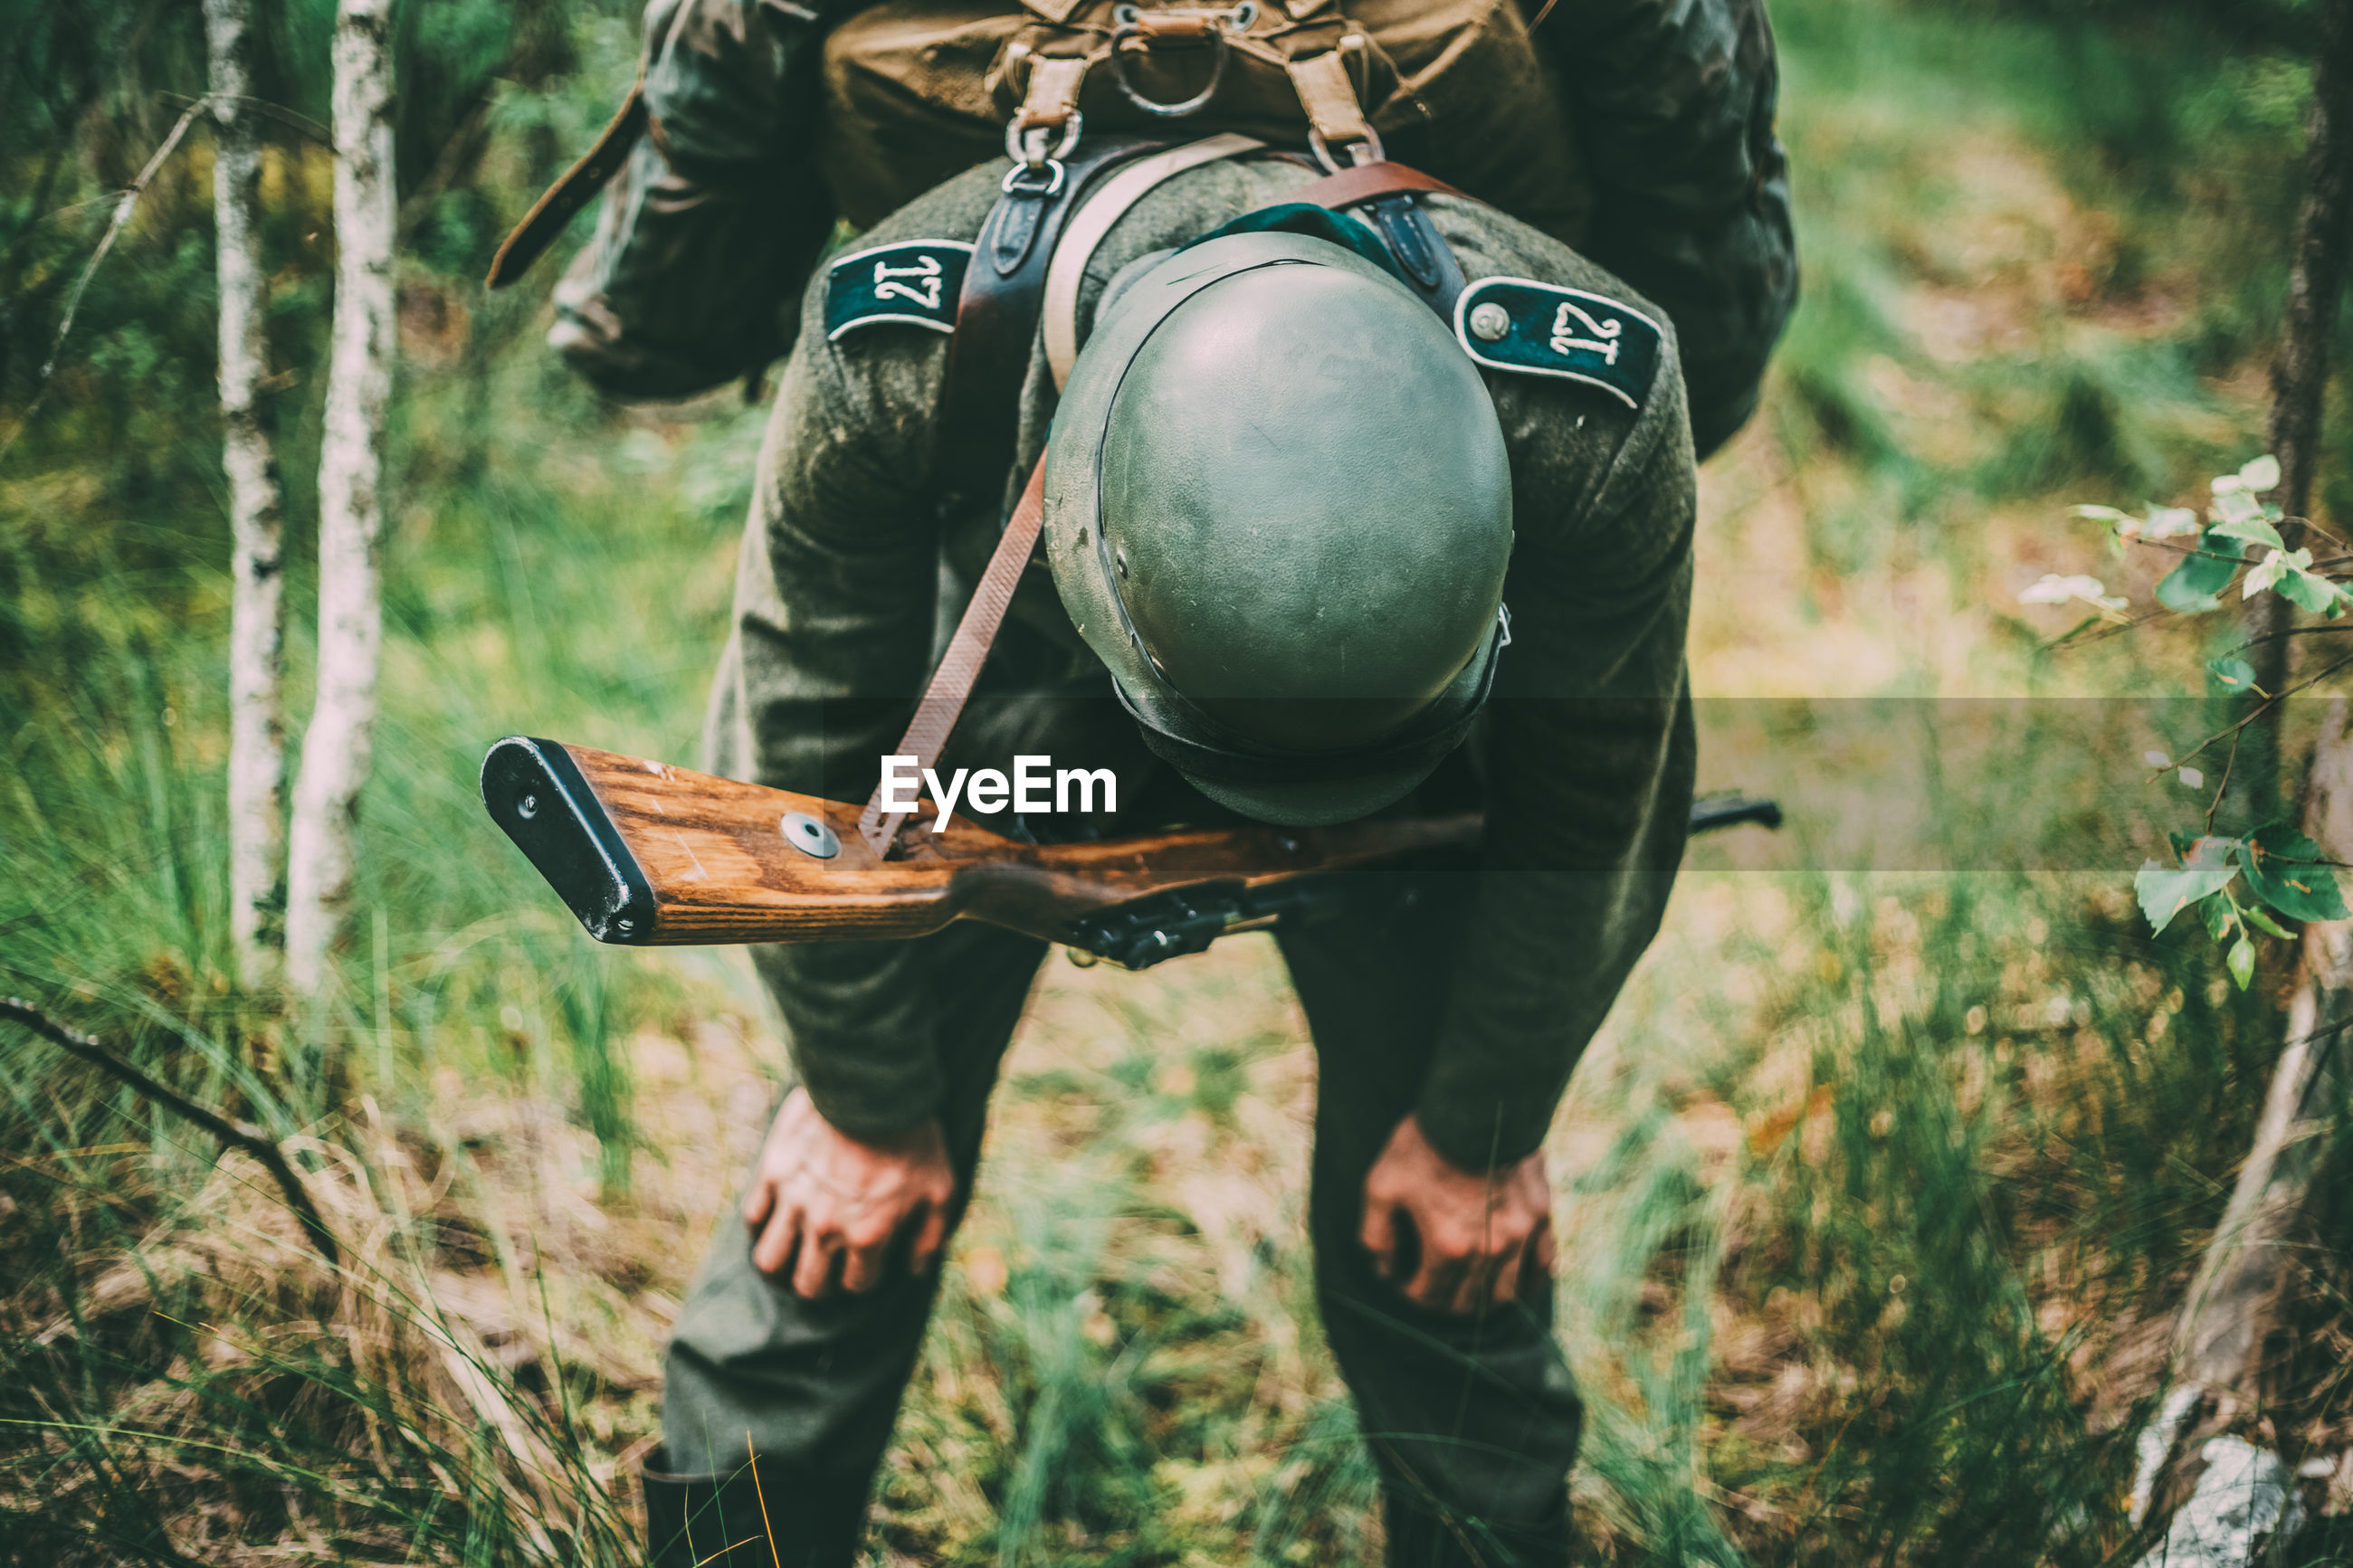 Tired soldier with rifle standing in forest